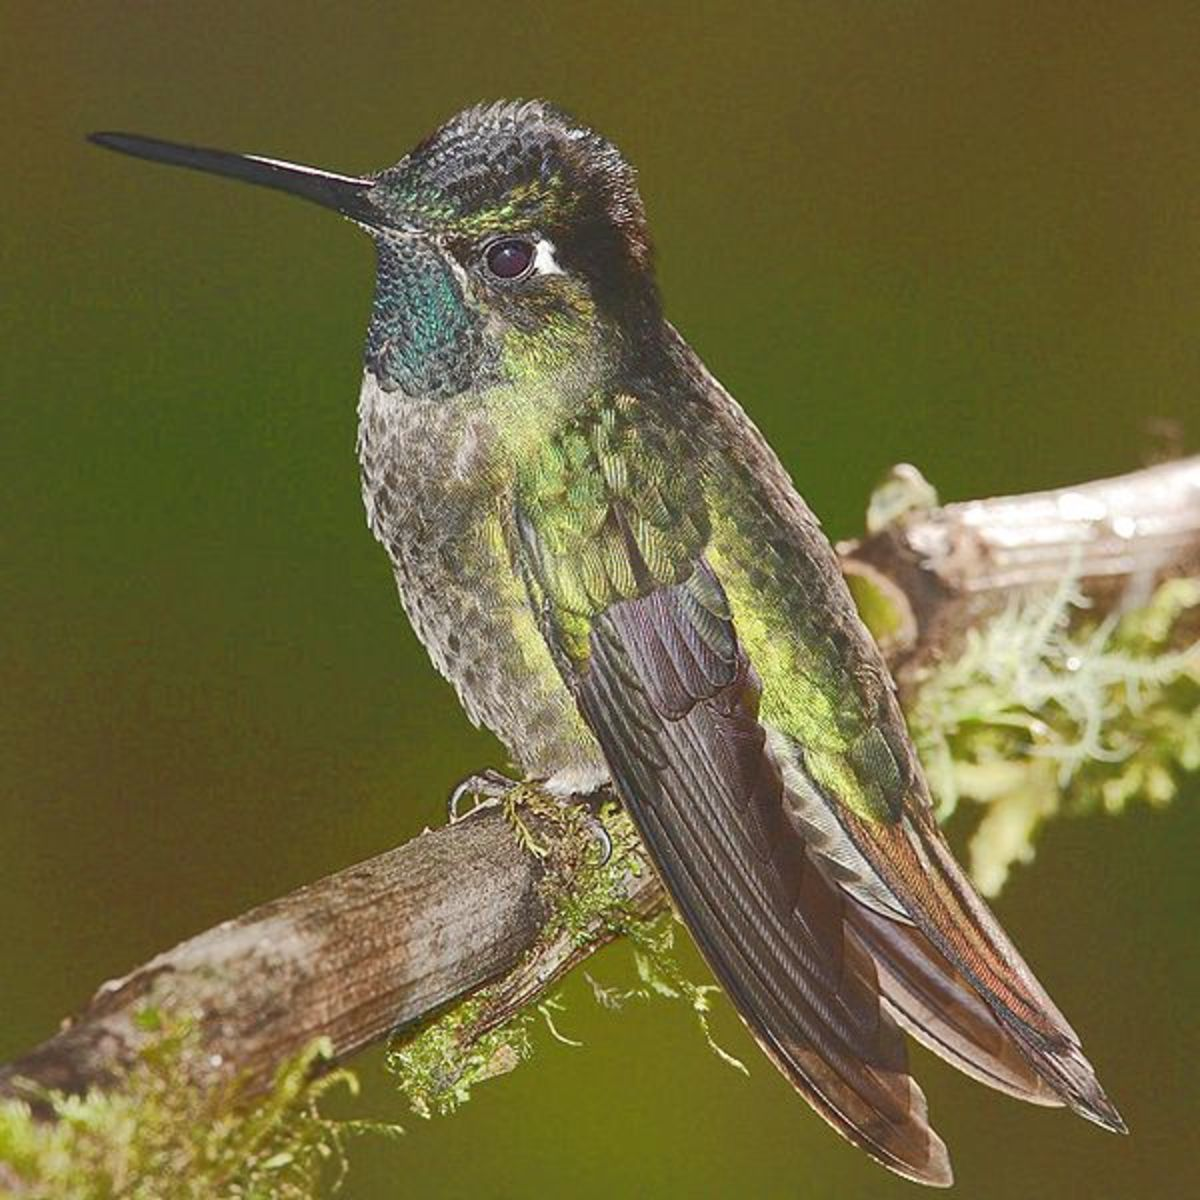 Different species of humming birds: Magnificent Hummingbird